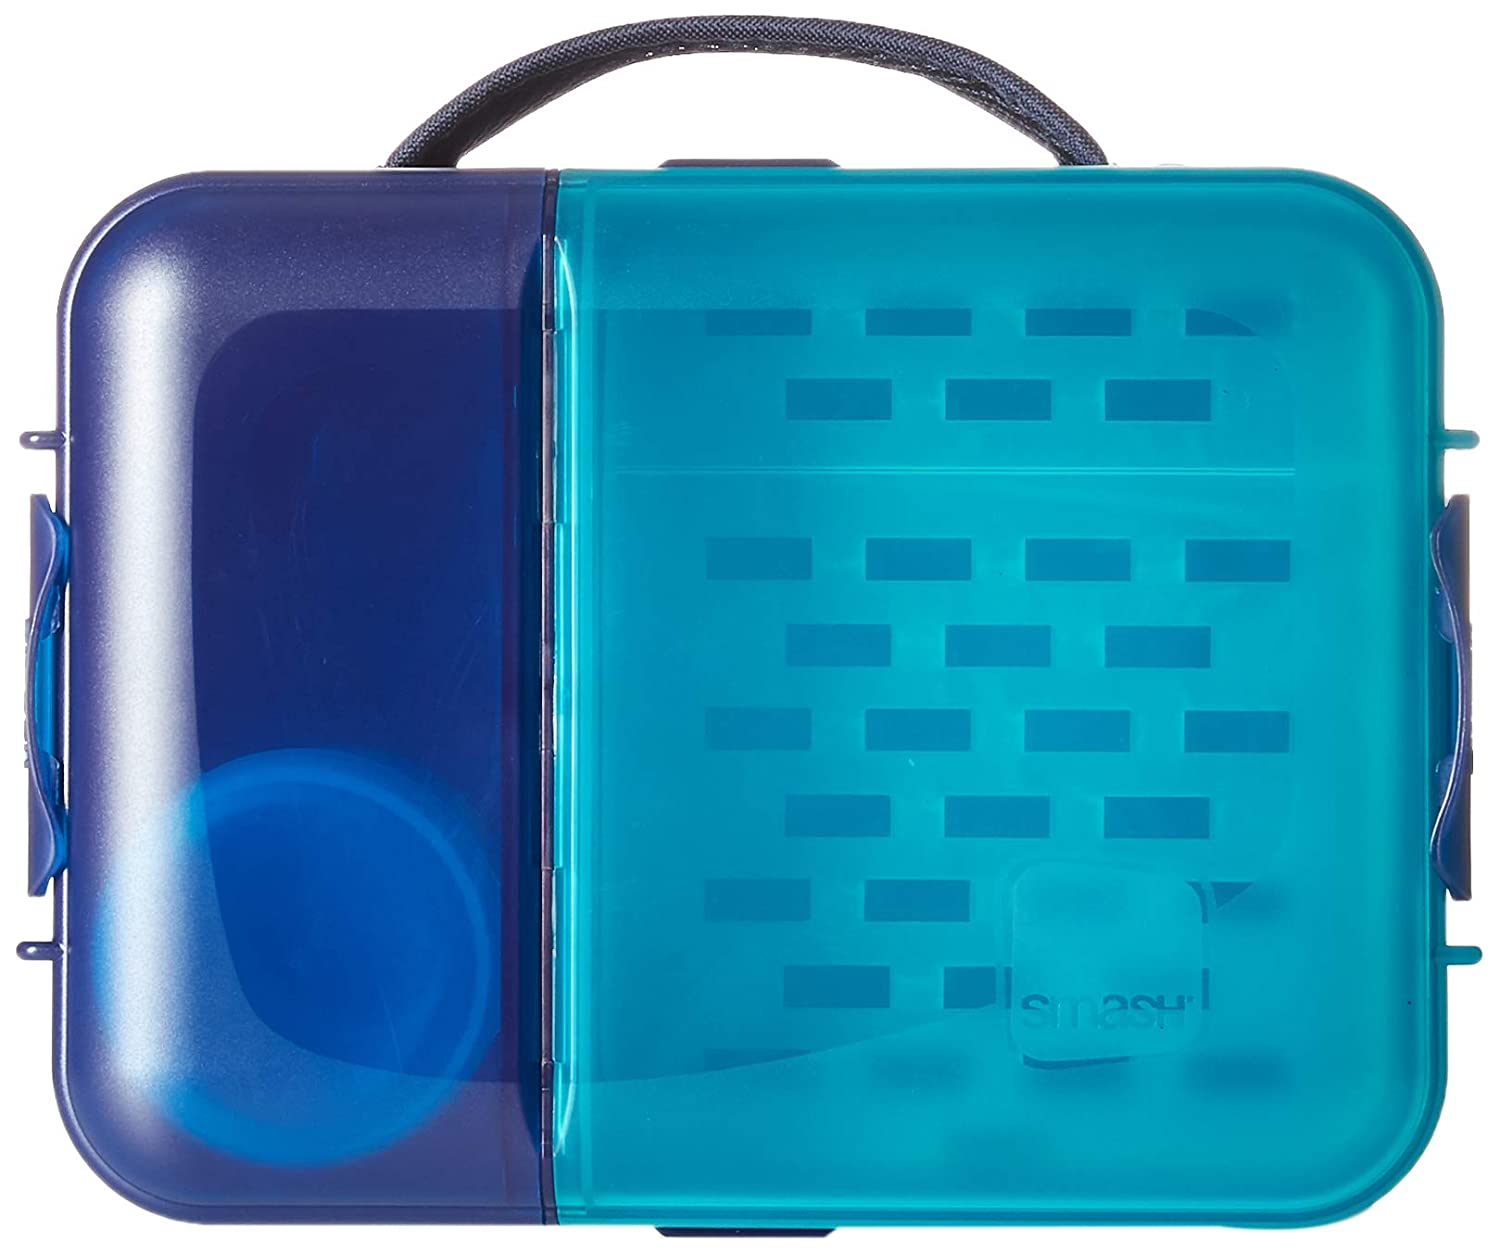 Nude Food Movers by Smash 20651 Blue Stars Reusable Lunch Box Navy